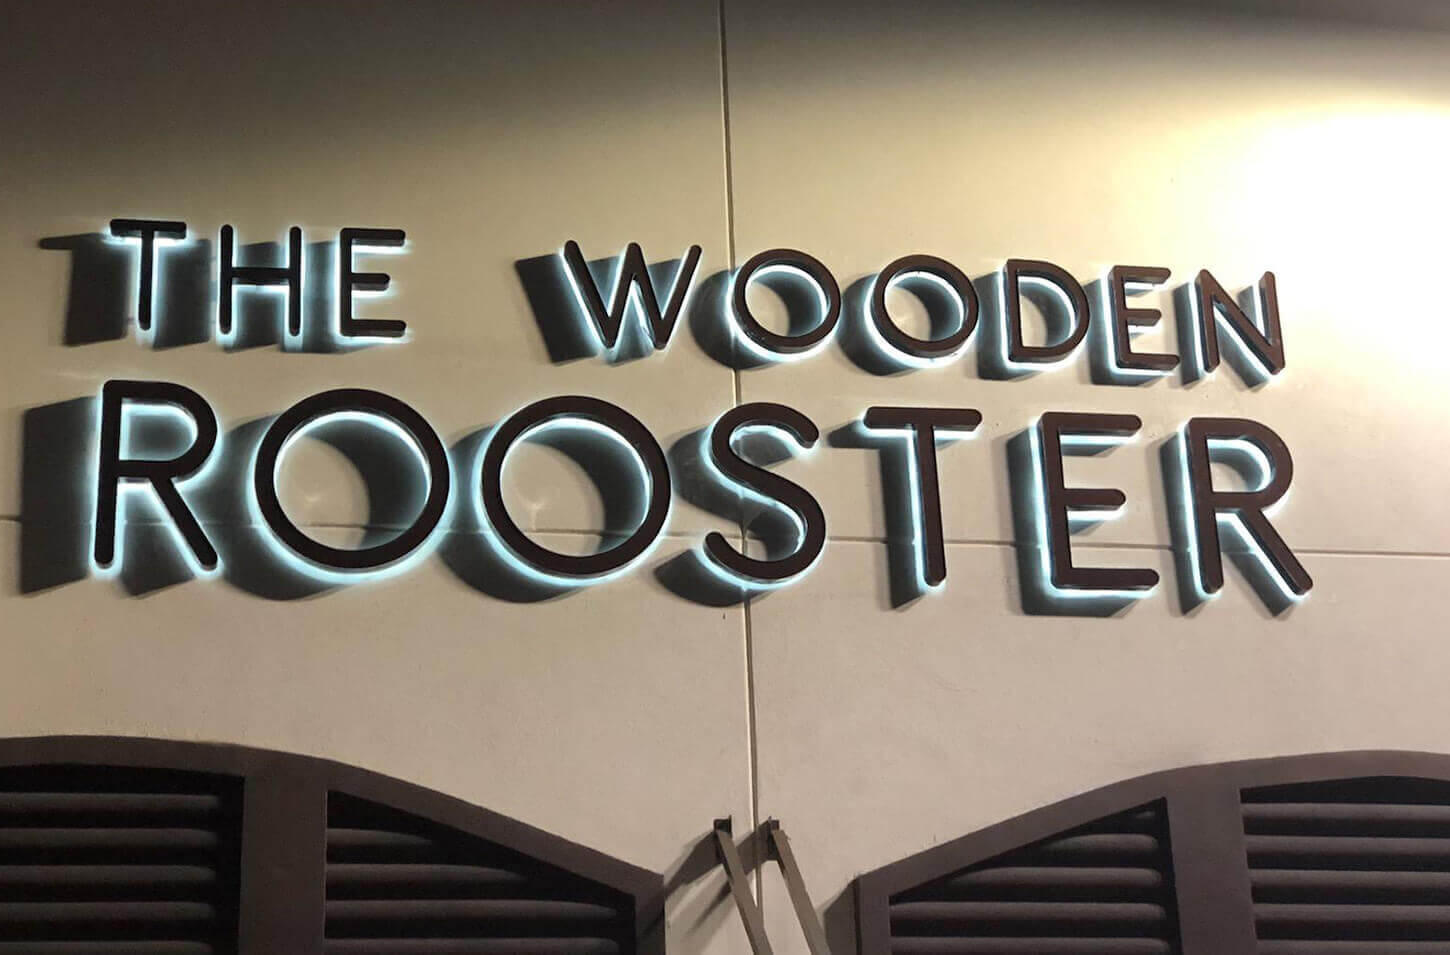 The Wooden Rooster crepe cafe